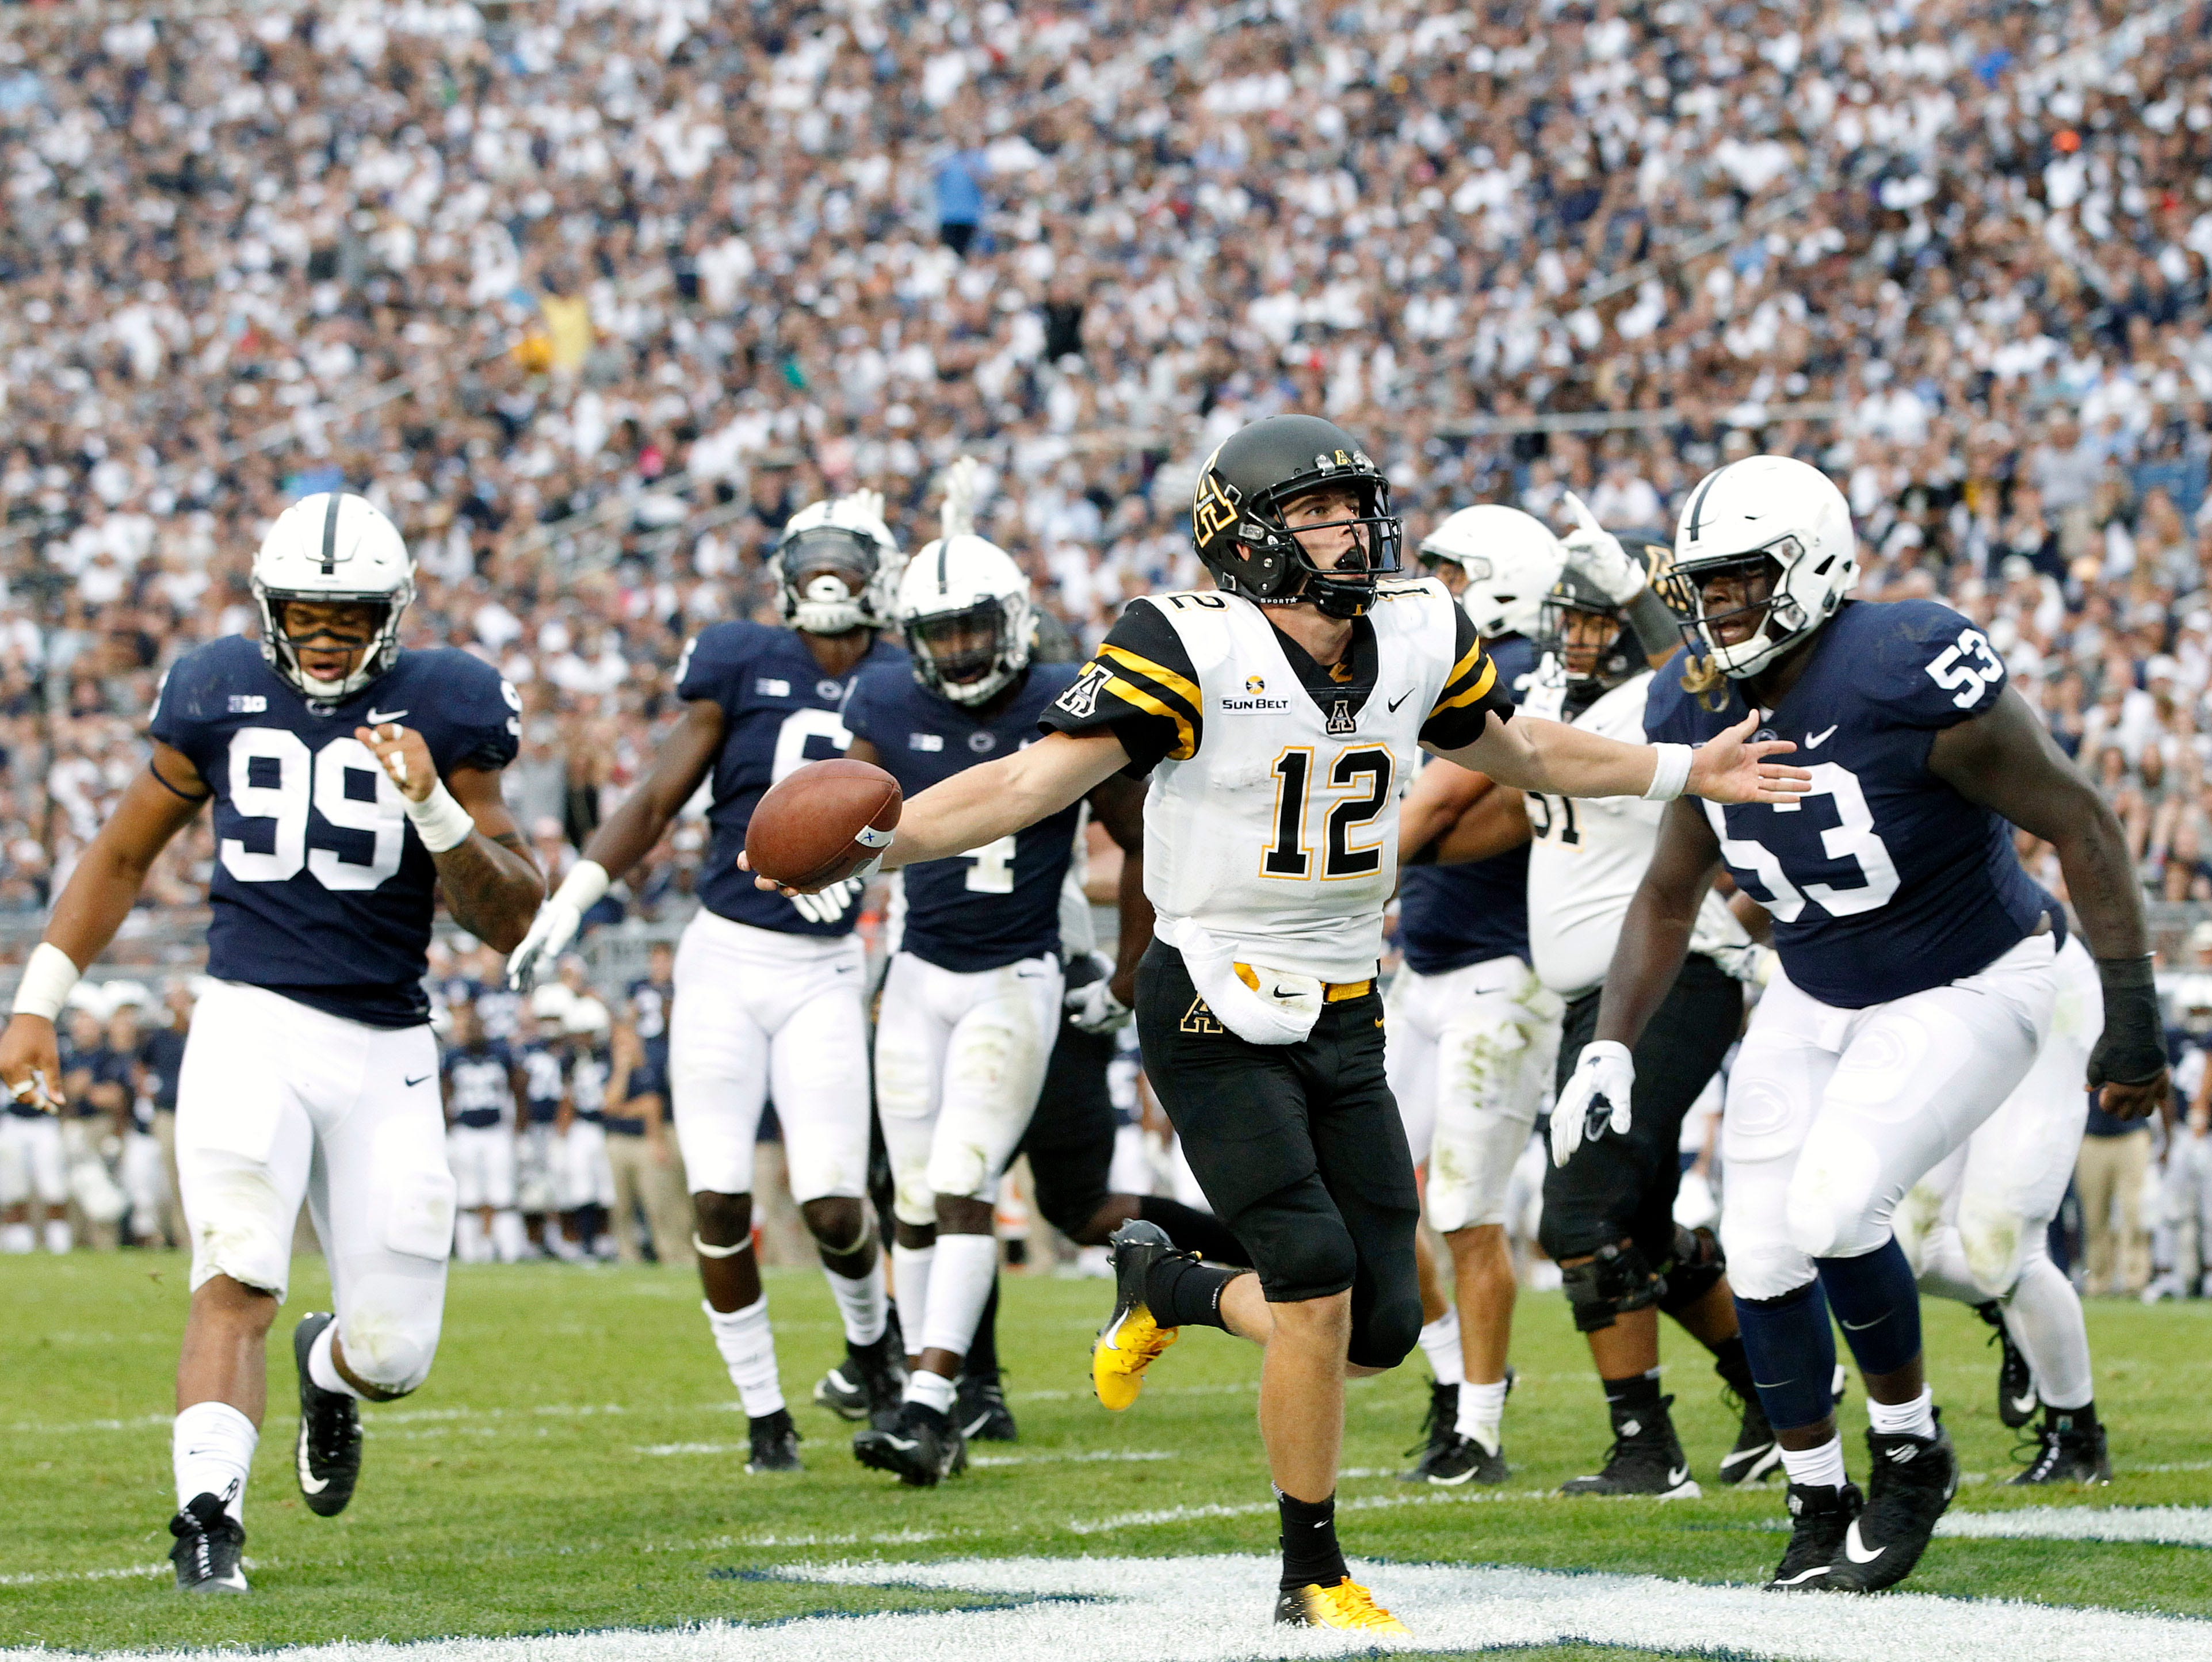 Appalachian State quarterback Zac Thomas (12) runs in for a touchdown against Penn State during the second half of an NCAA college football game in State College, Pa., Saturday, Sept. 1, 2018. Penn State won 45-38 in OT. (AP Photo/Chris Knight)